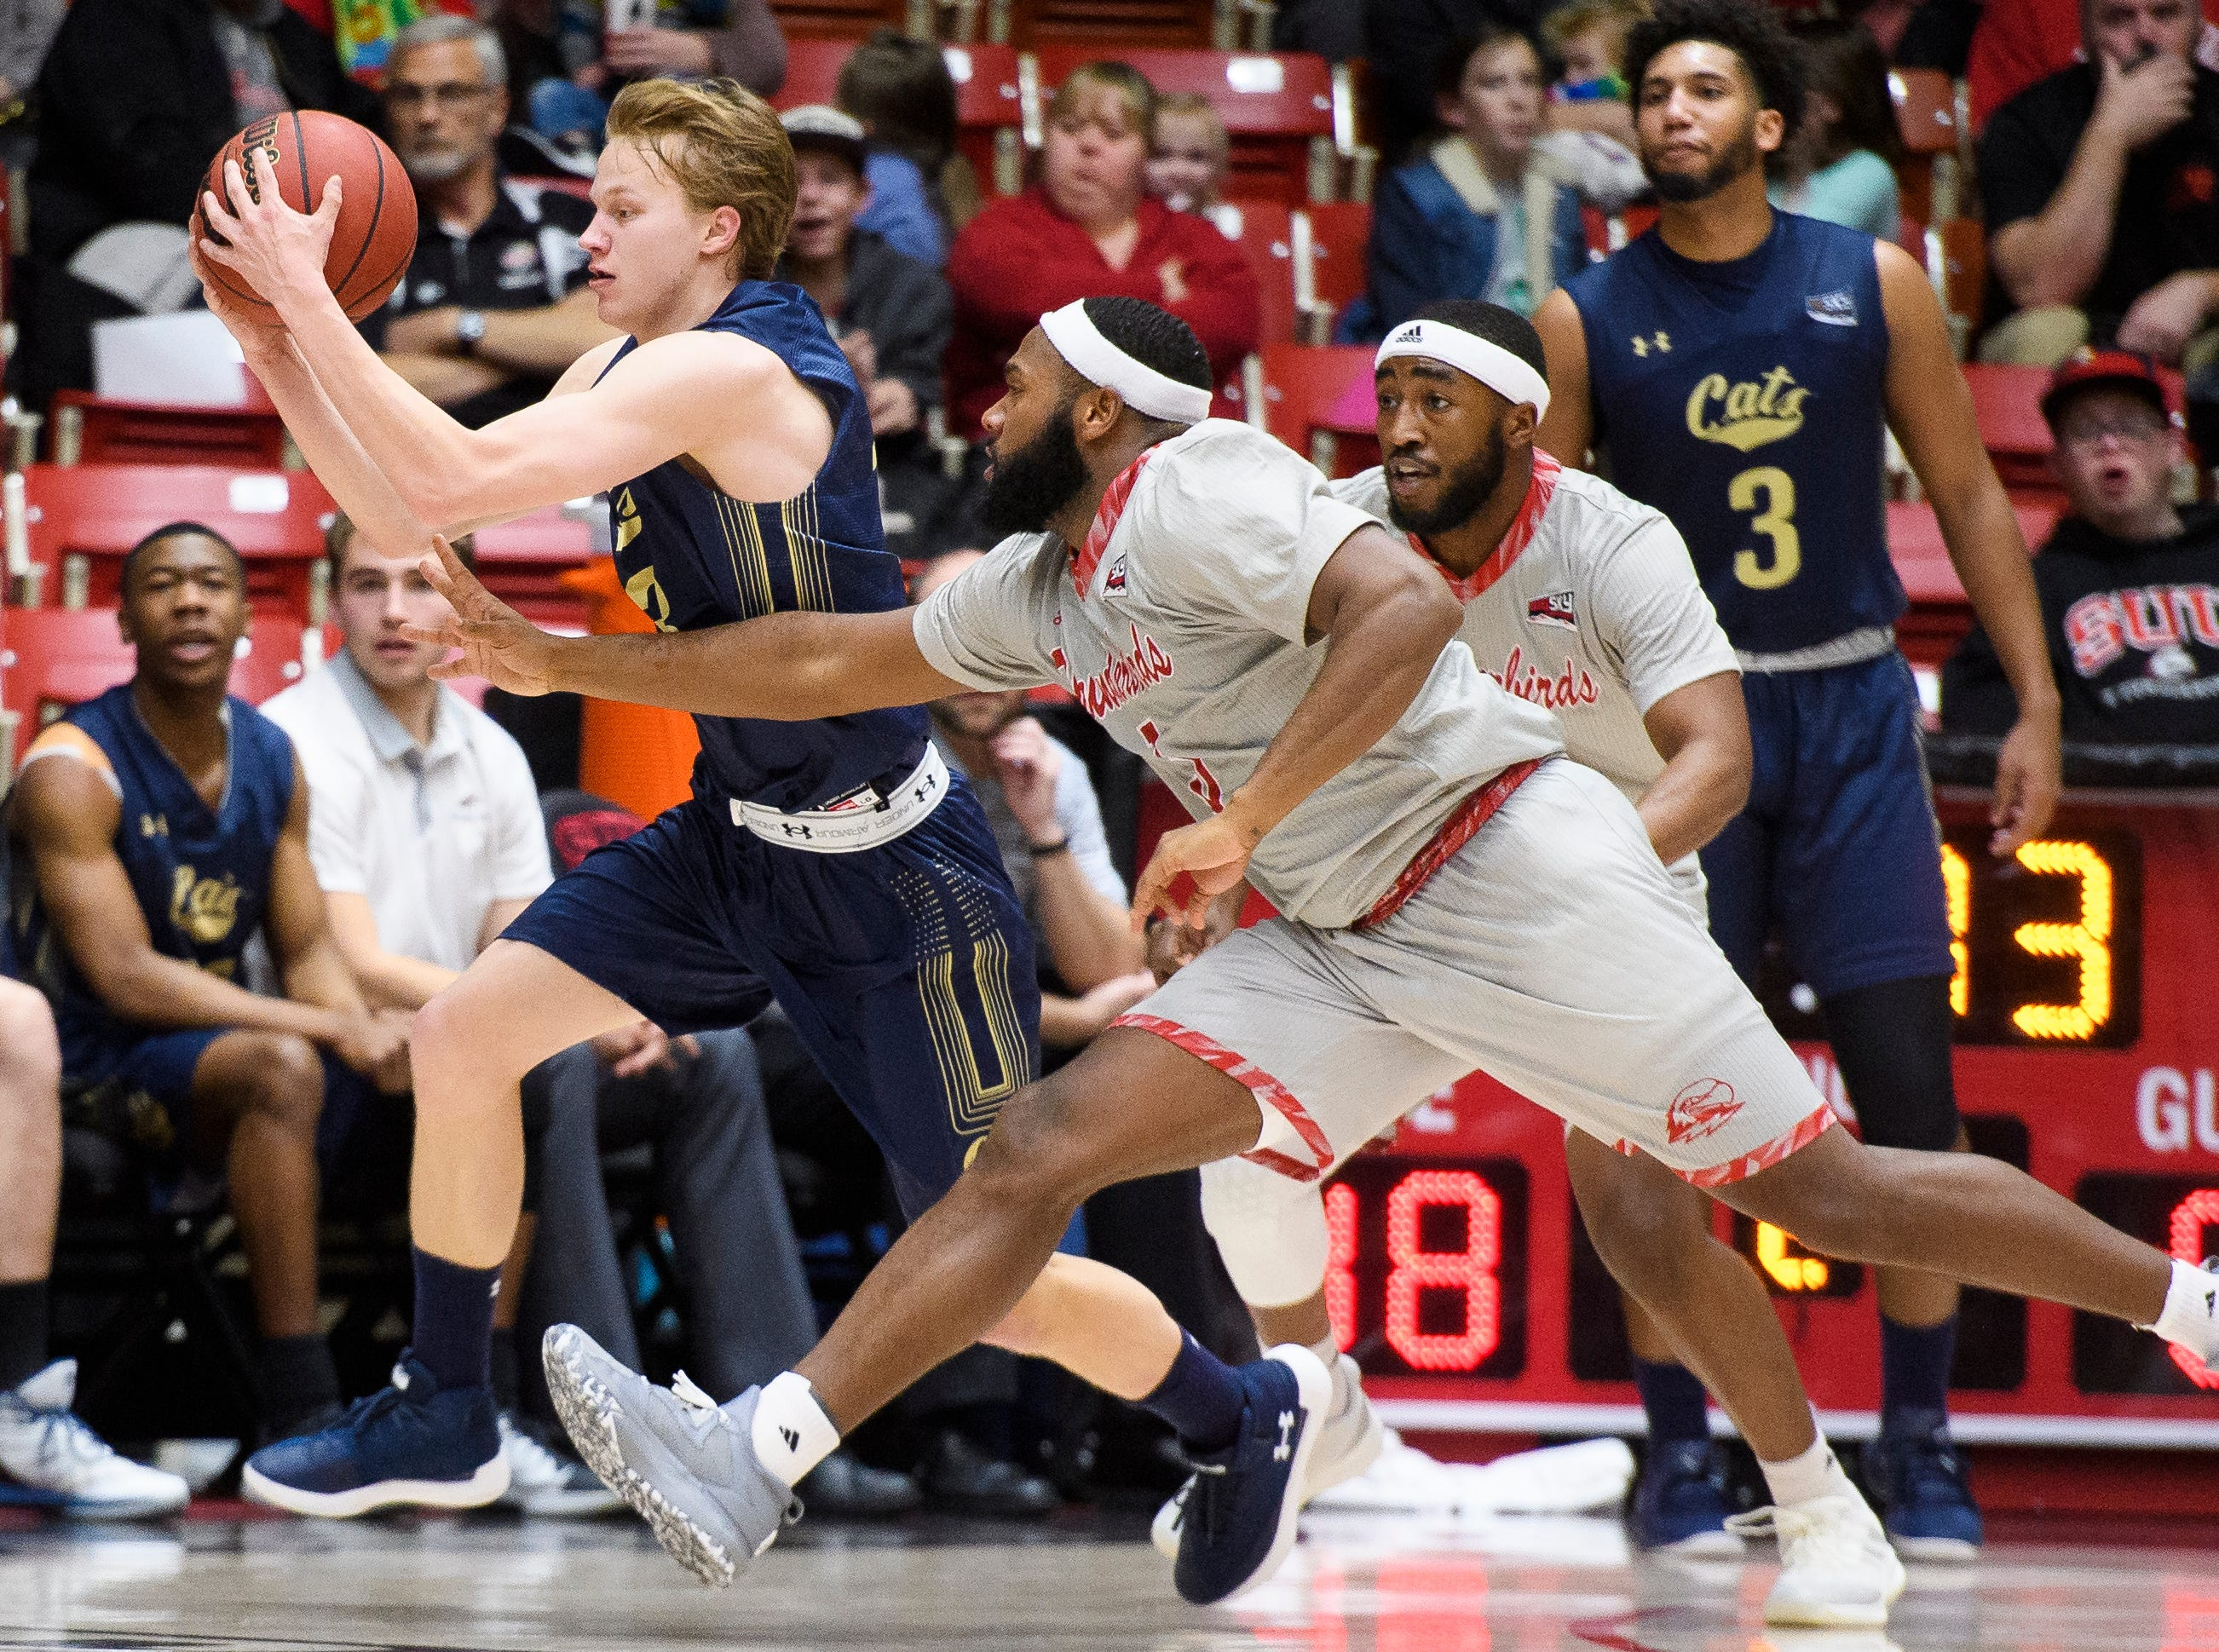 The Southern Utah University men's basketball team plays against Montana State in the America First Event Center Saturday, December 29, 2018. SUU lost, 92-62.